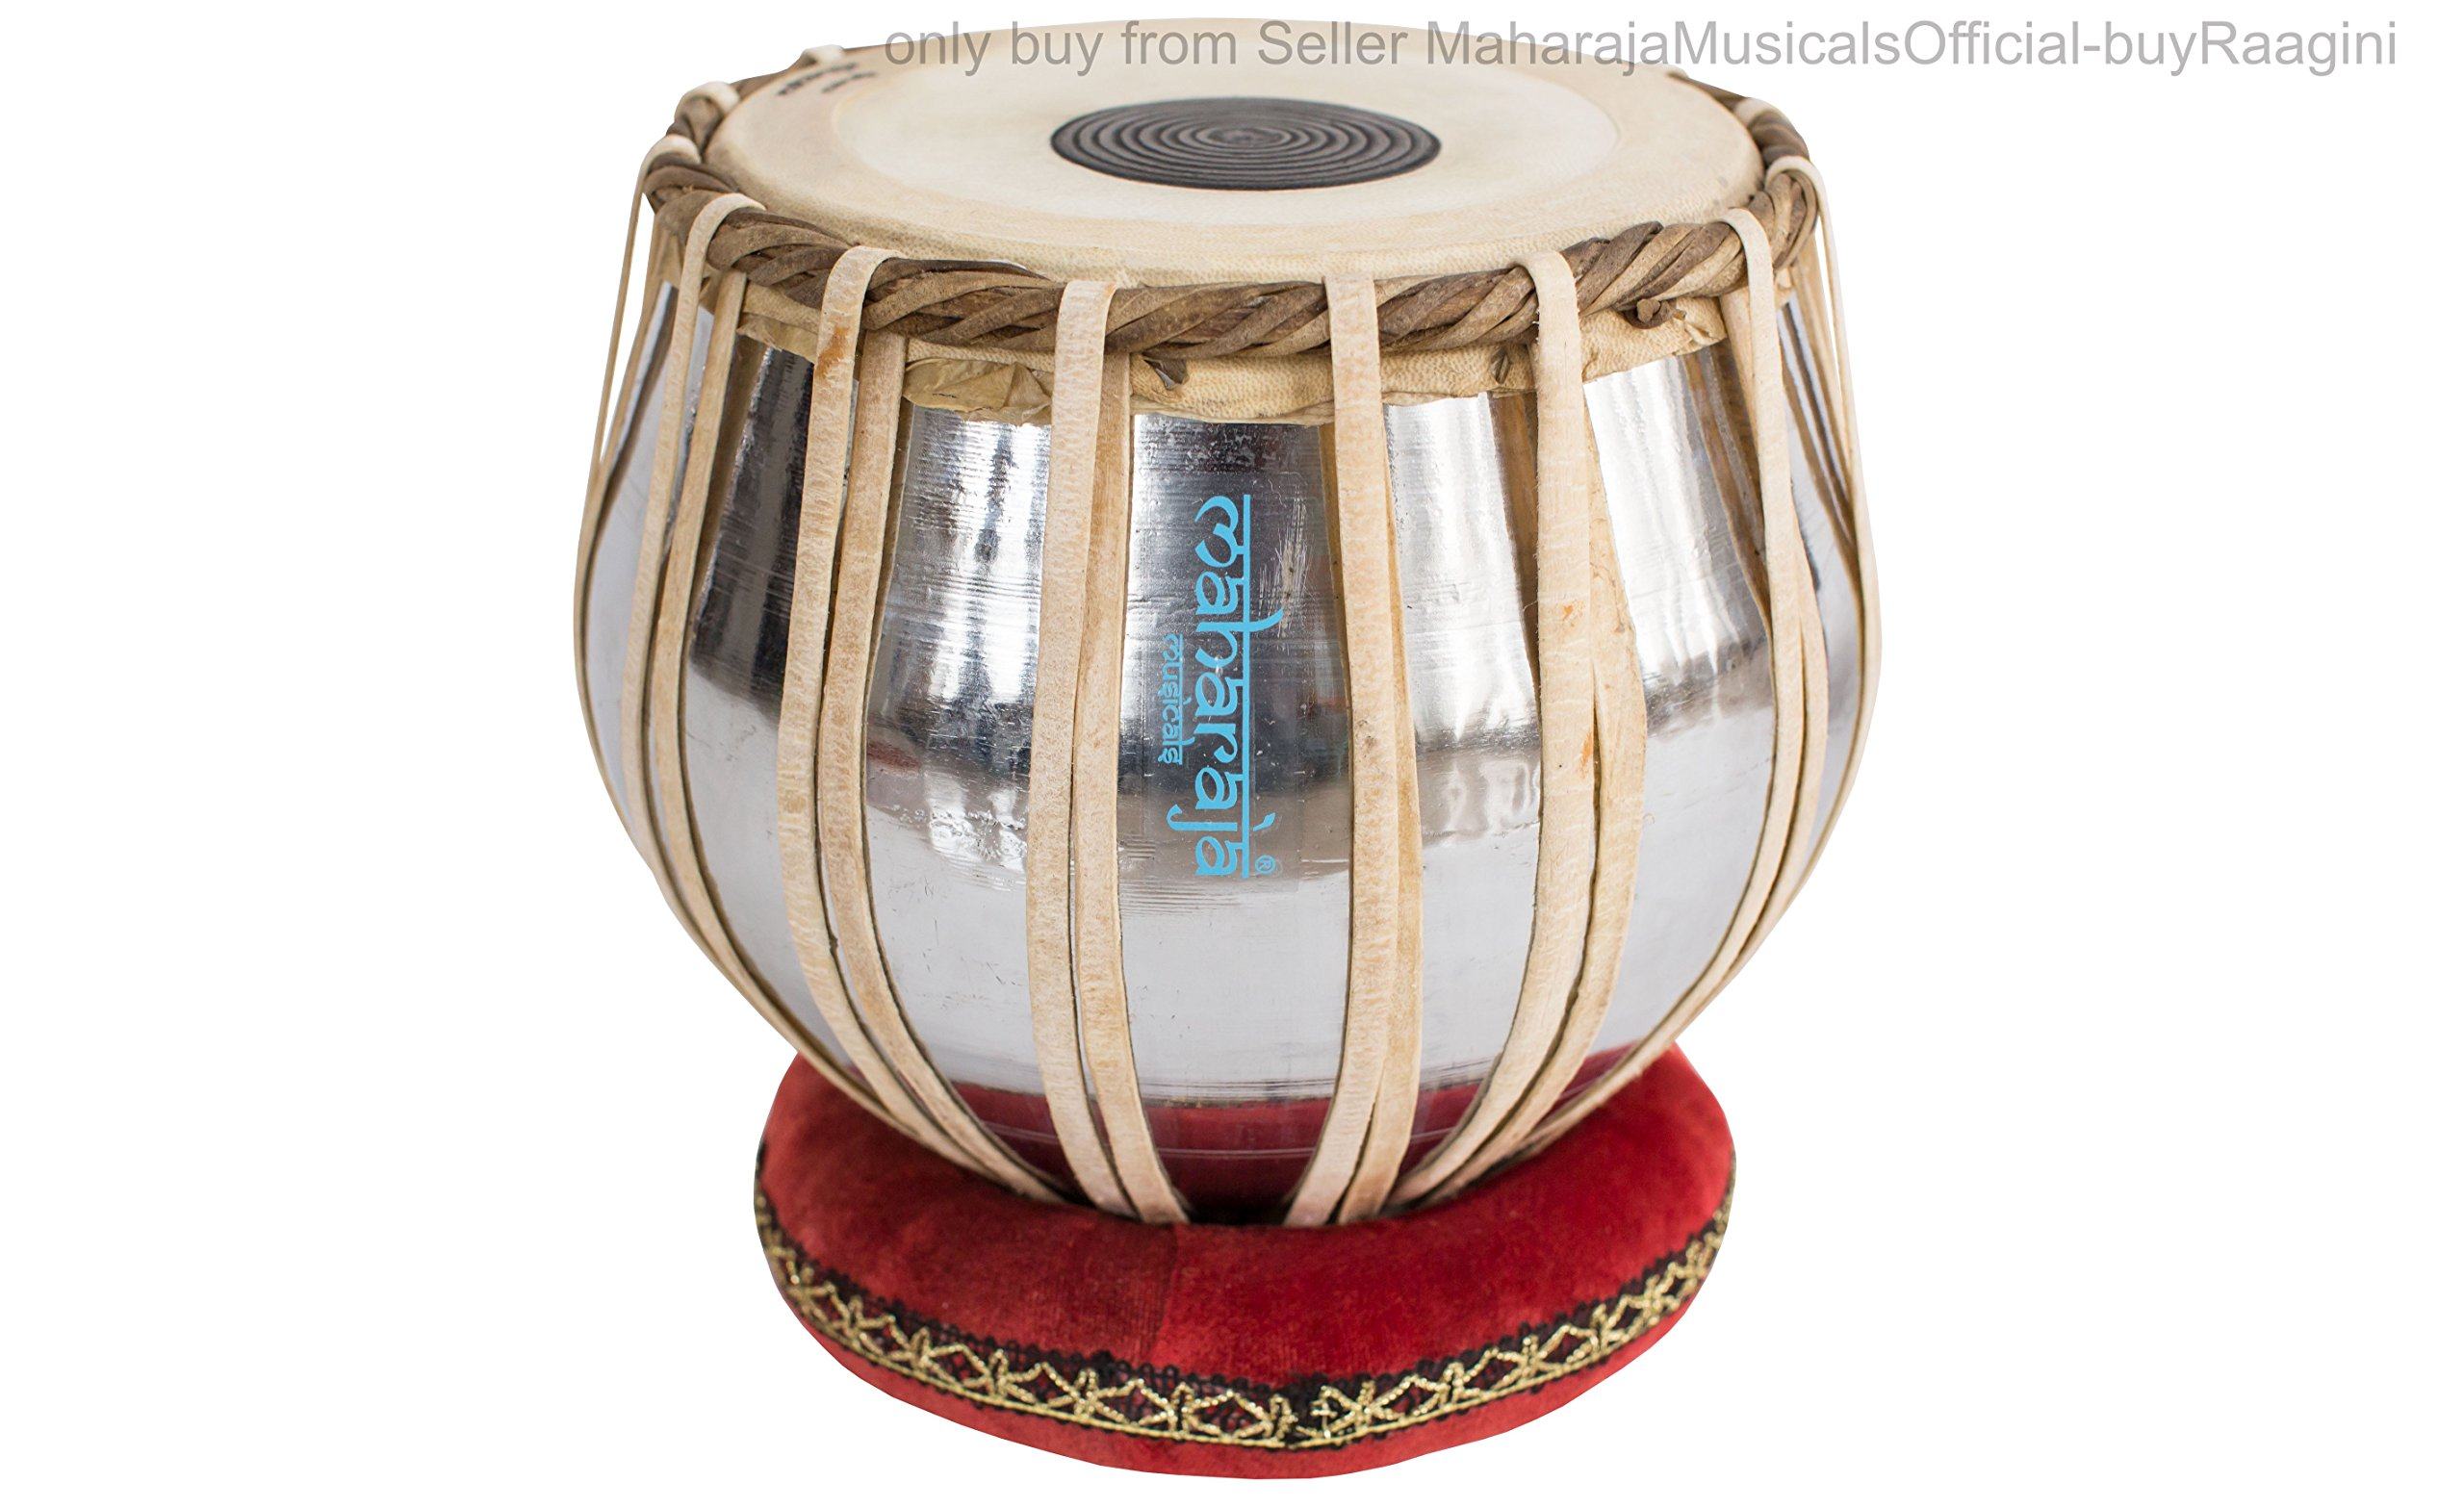 MAHARAJA Student Tabla Drum Set, Basic Tabla Set, Steel Bayan, Dayan with Book, Hammer, Cushions & Cover - Perfect Tablas for Students and Beginners on Budget (PDI-IB) Tabla Drums, Indian Hand Drums by Maharaja Musicals (Image #3)